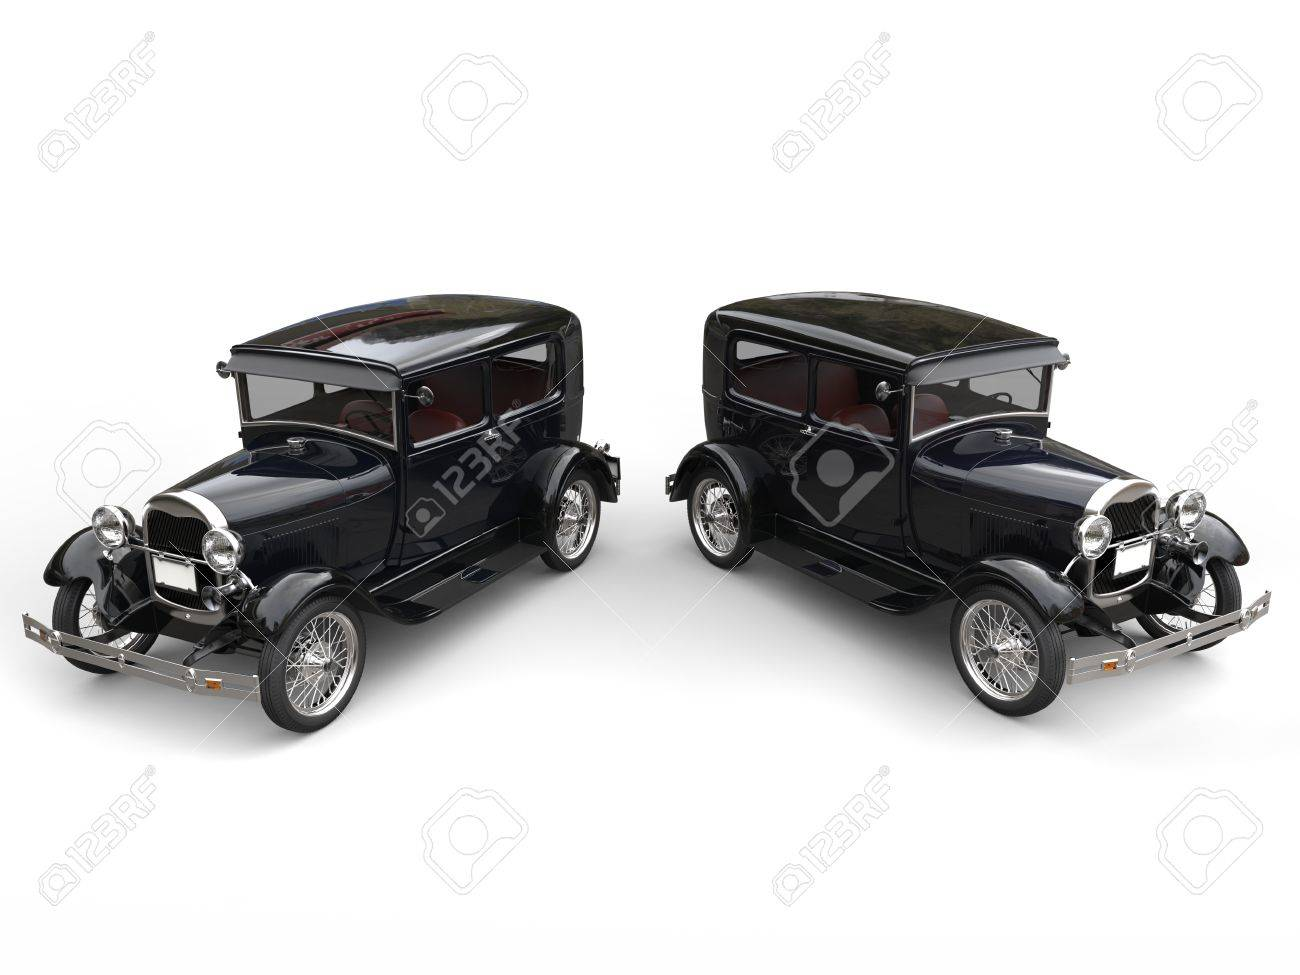 Two Beautiful 1920s Vintage Cars - Side By Side - Top View Stock ...